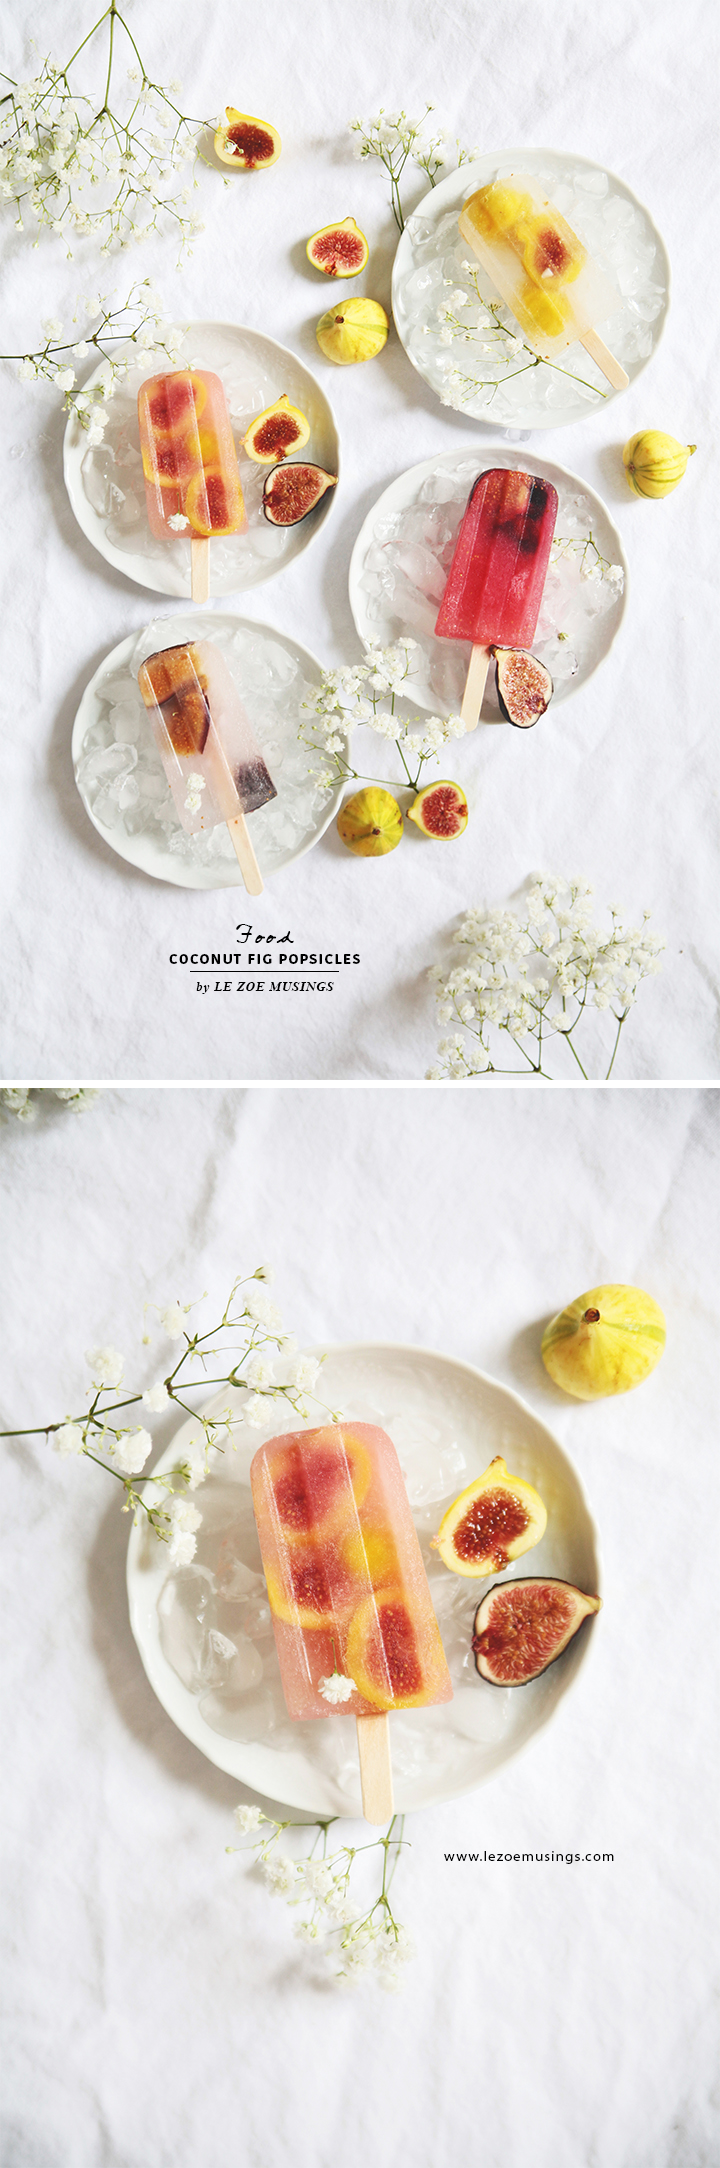 Coconut Fig Popsicles by Le Zoe Musings3